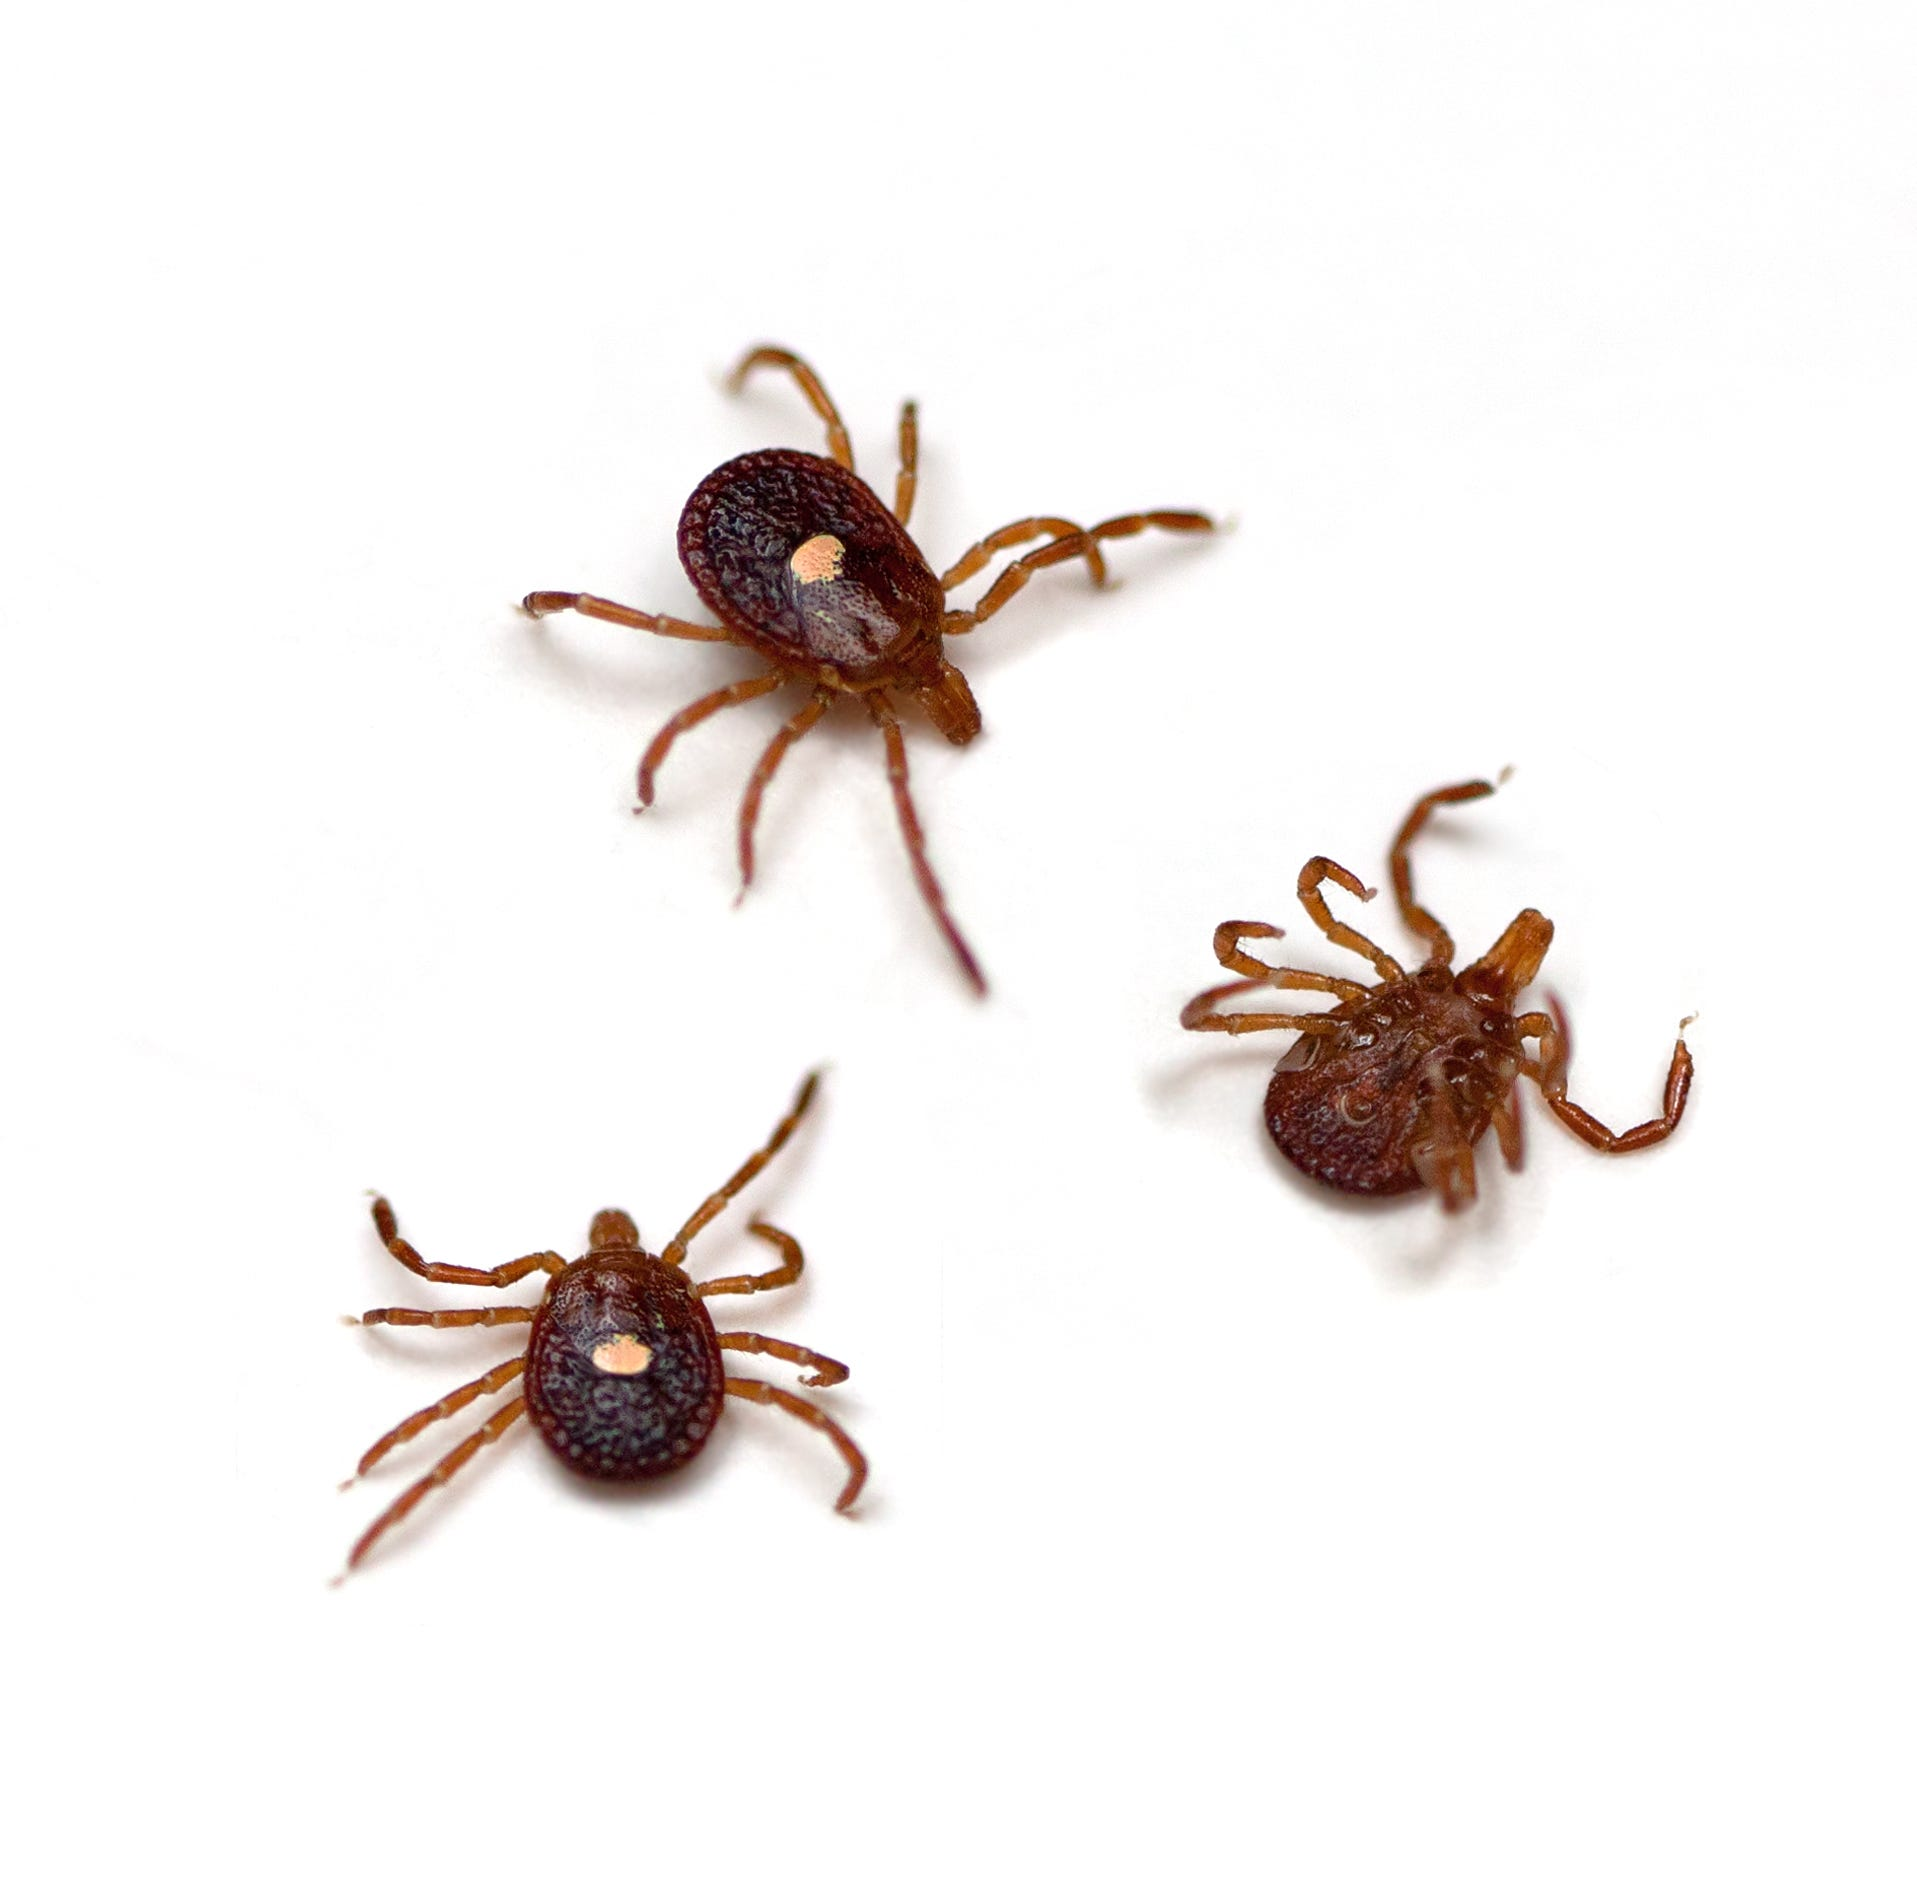 Even in a Michigan outdoor paradise, ticks are a growing public health threat